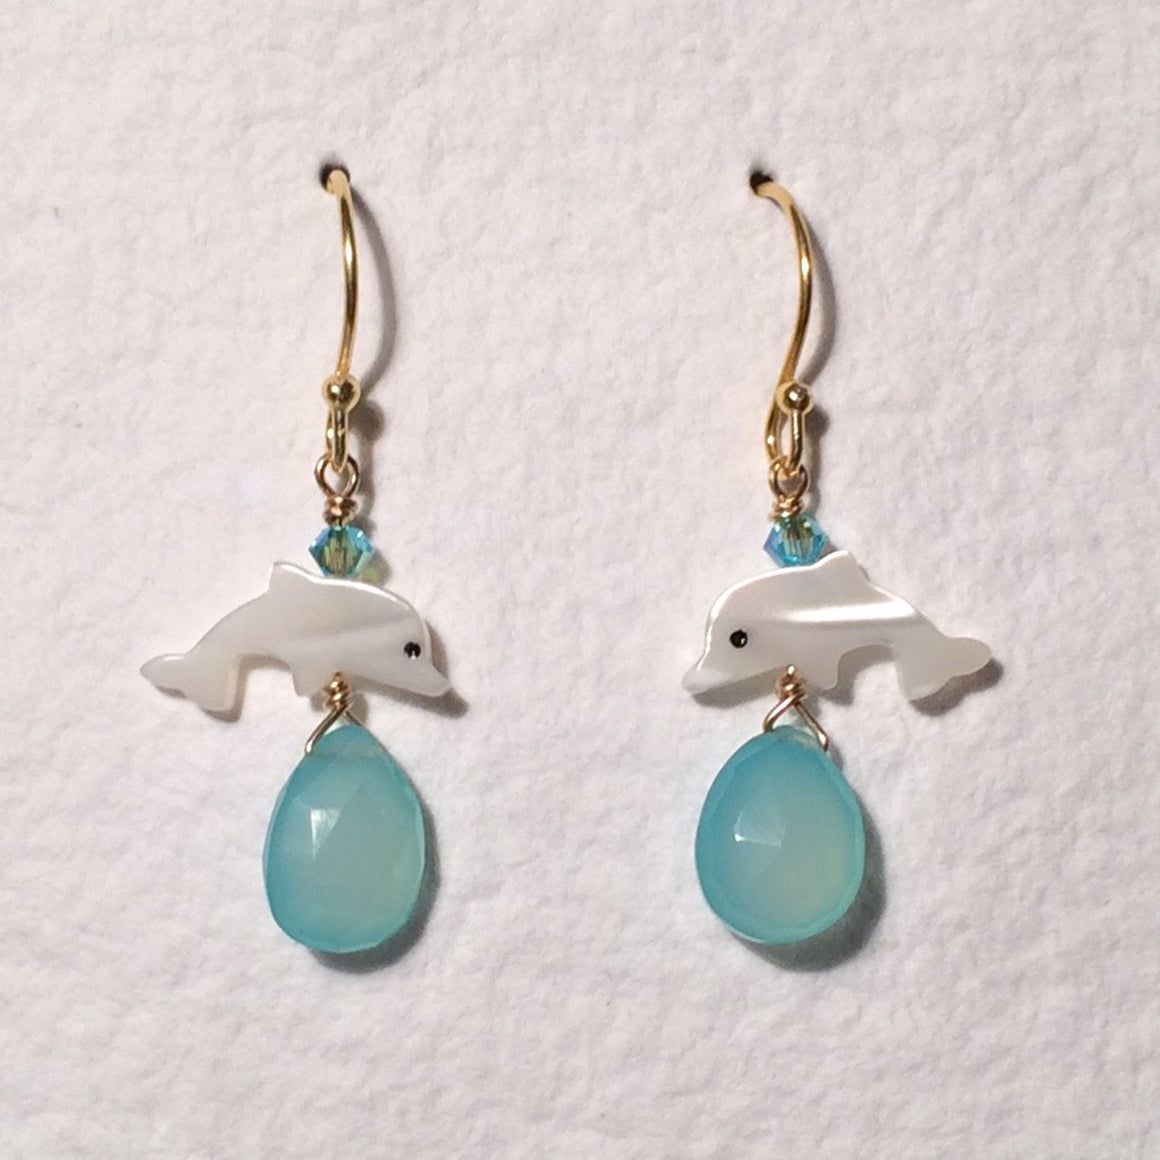 Aqua Chalcedony Dolphin Earrings